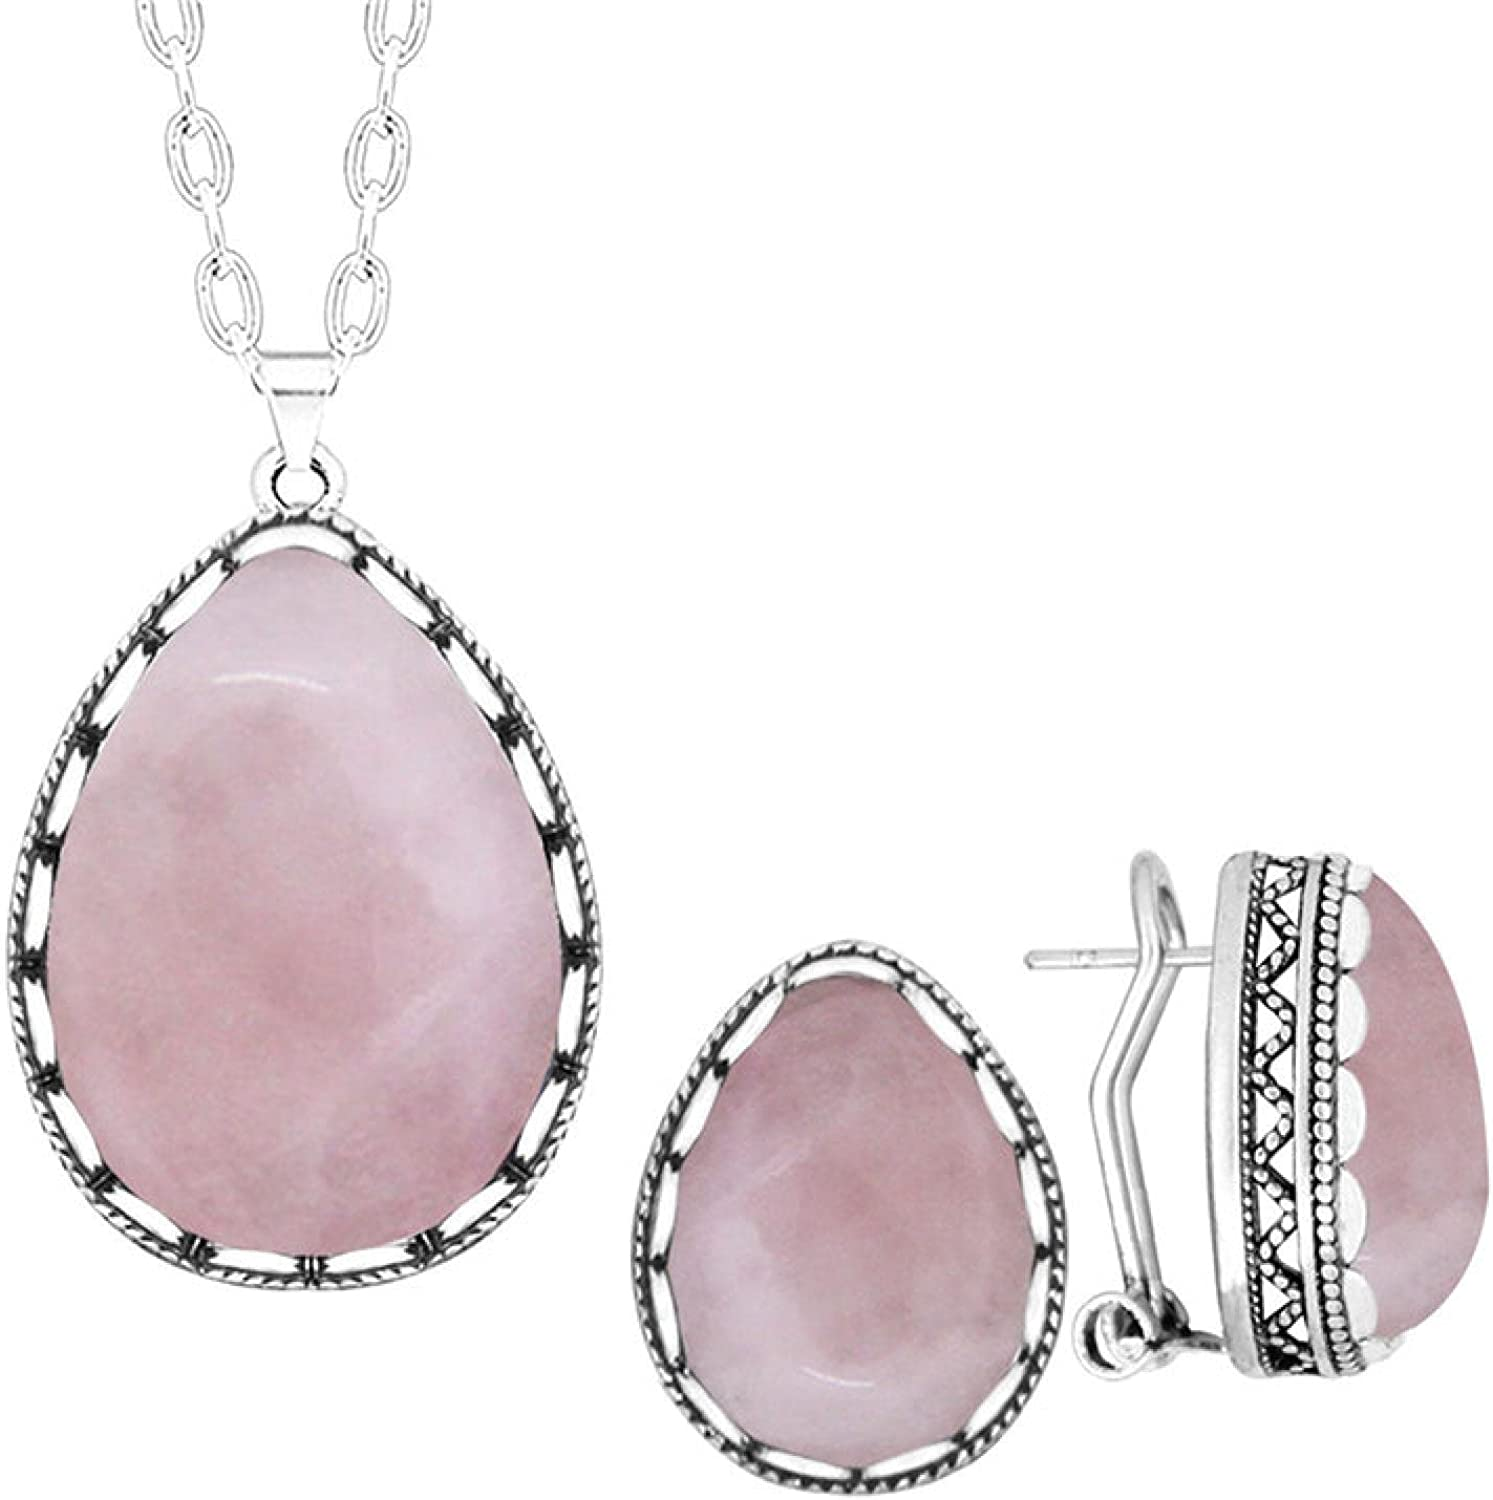 Classic Water Drop Pink Quartz Jewelry Sets Necklace Stud Earring Stainless Steel Chain For Woman